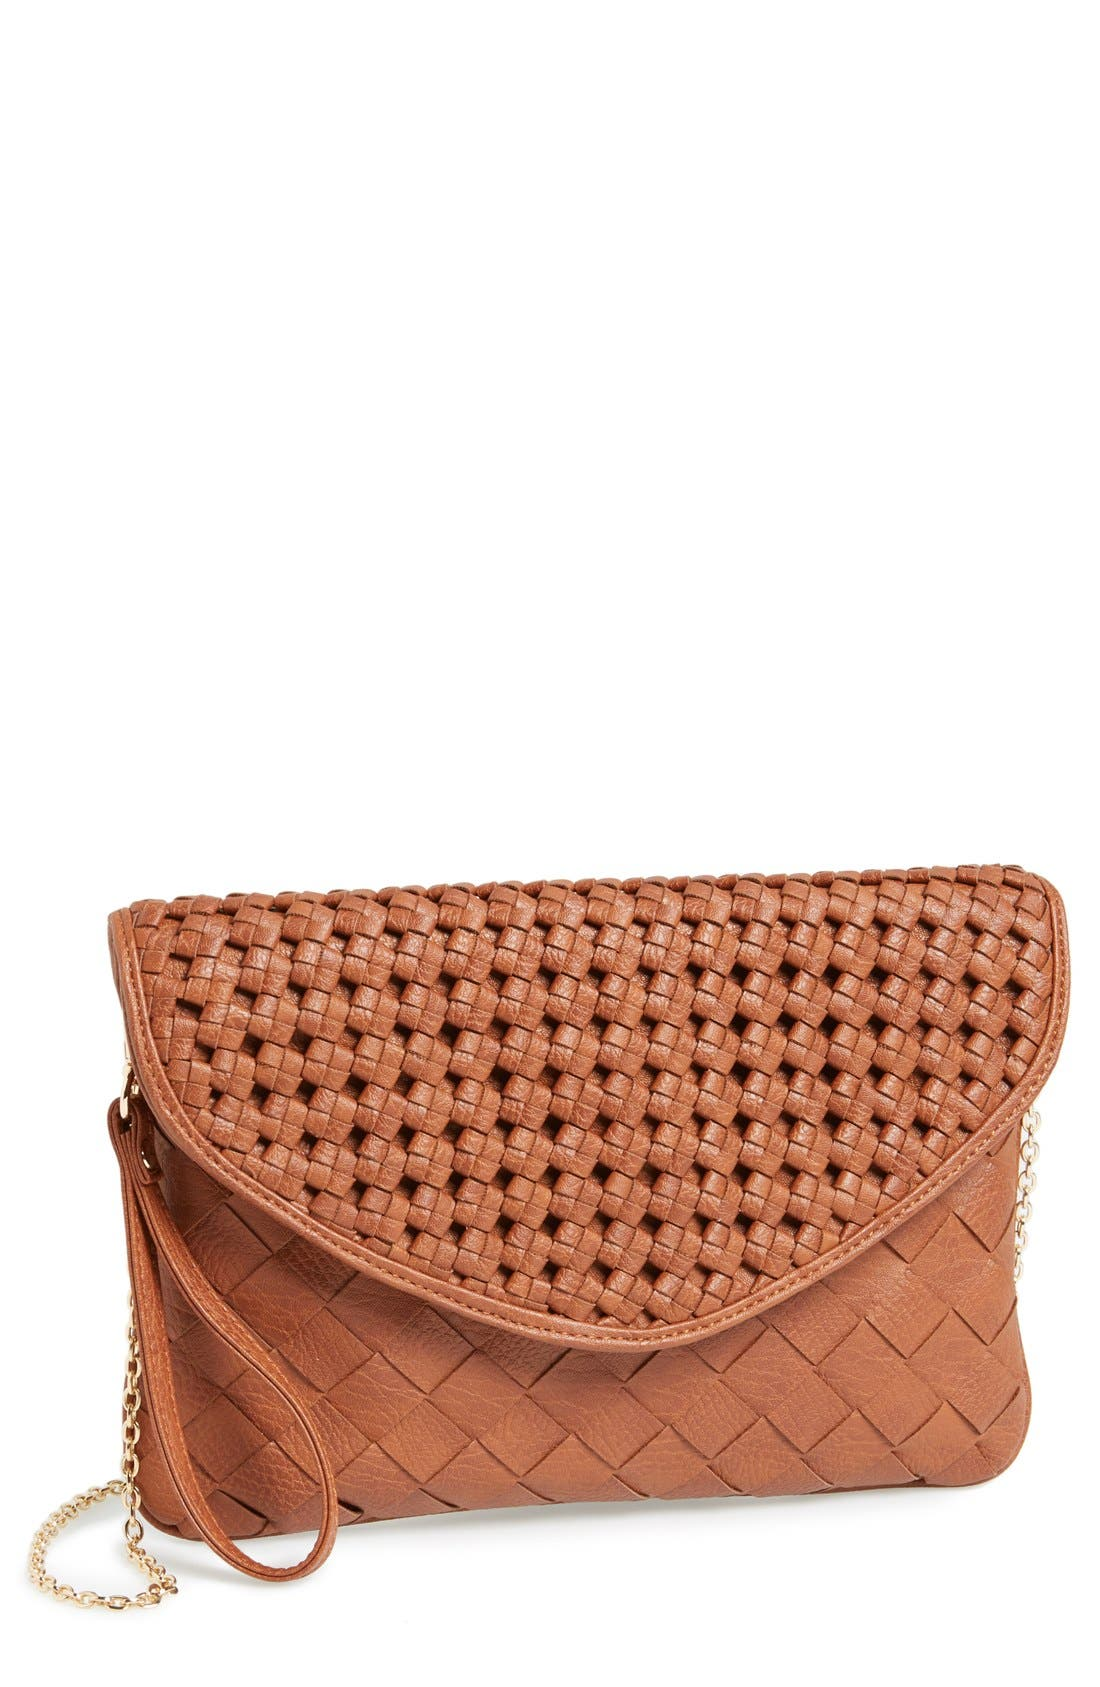 Main Image - Sole Society 'Chloe' Woven Faux Leather Clutch